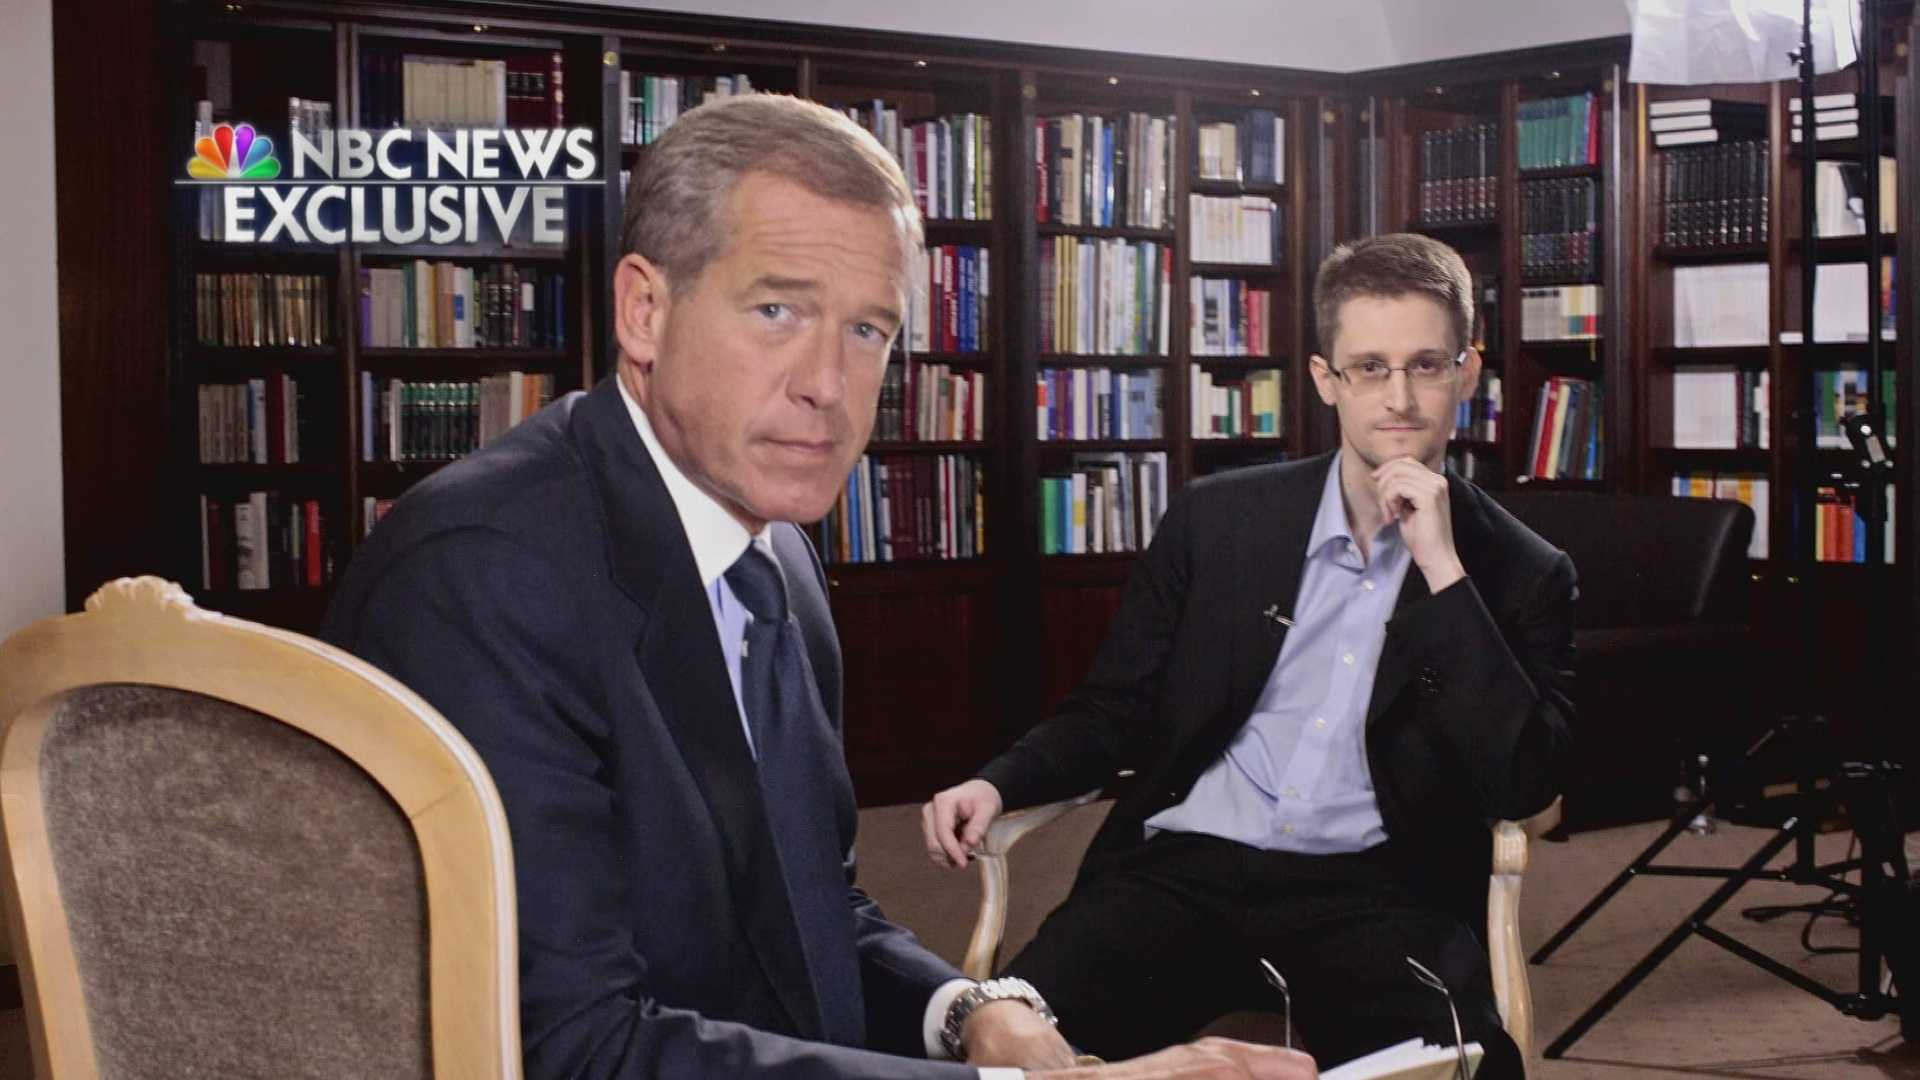 Brian Williams interviews Edward Snowden